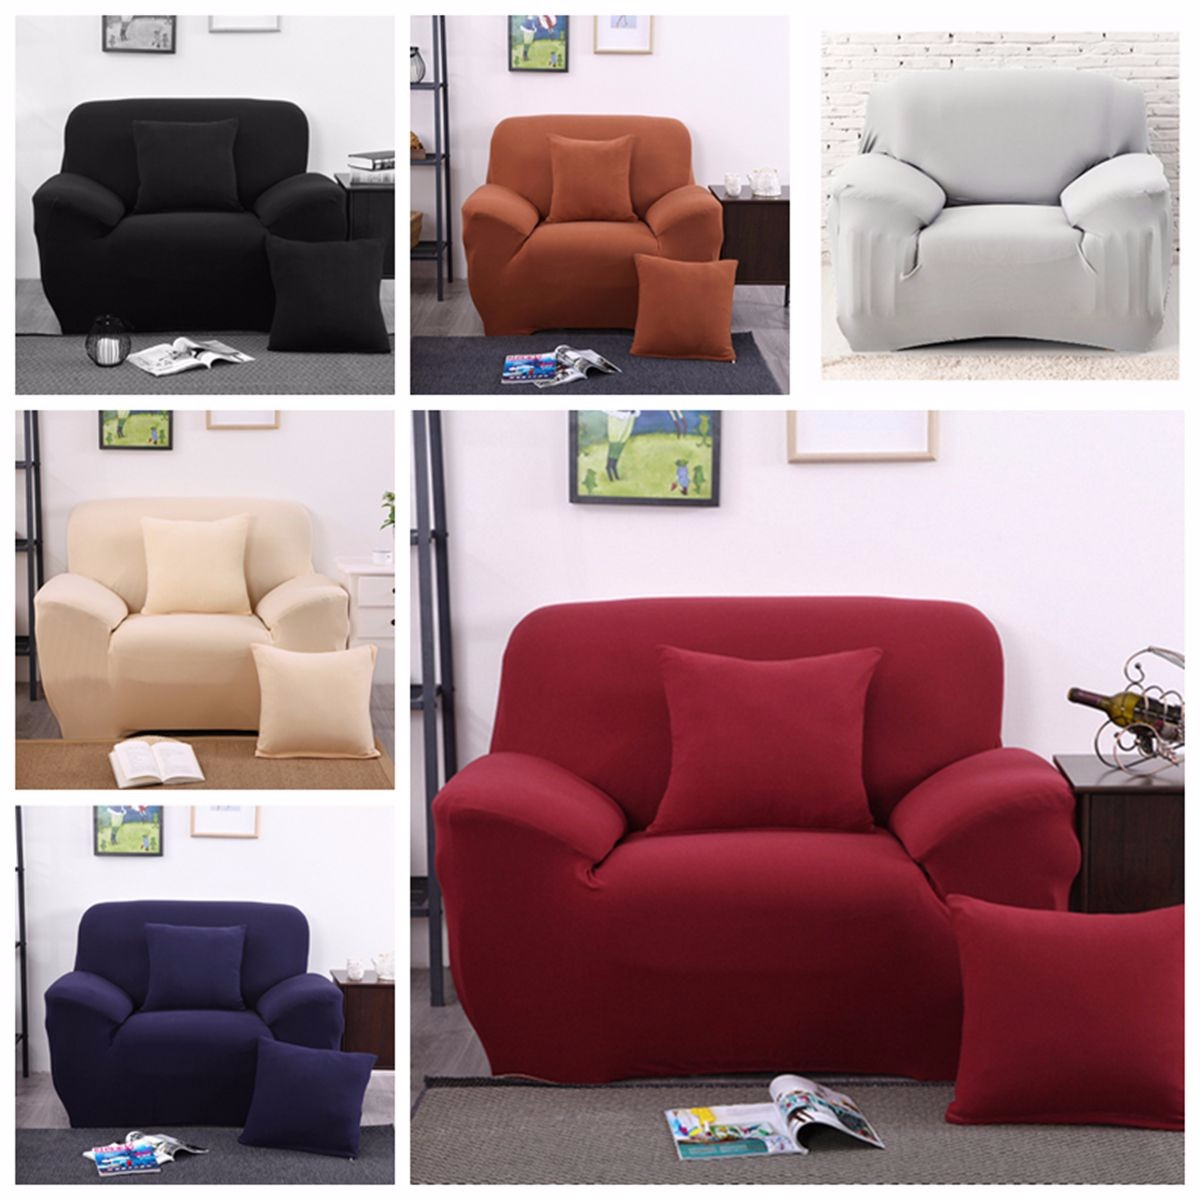 lillberg 2 seater sofa covers country set stretch slipcover 1 3 seat 433